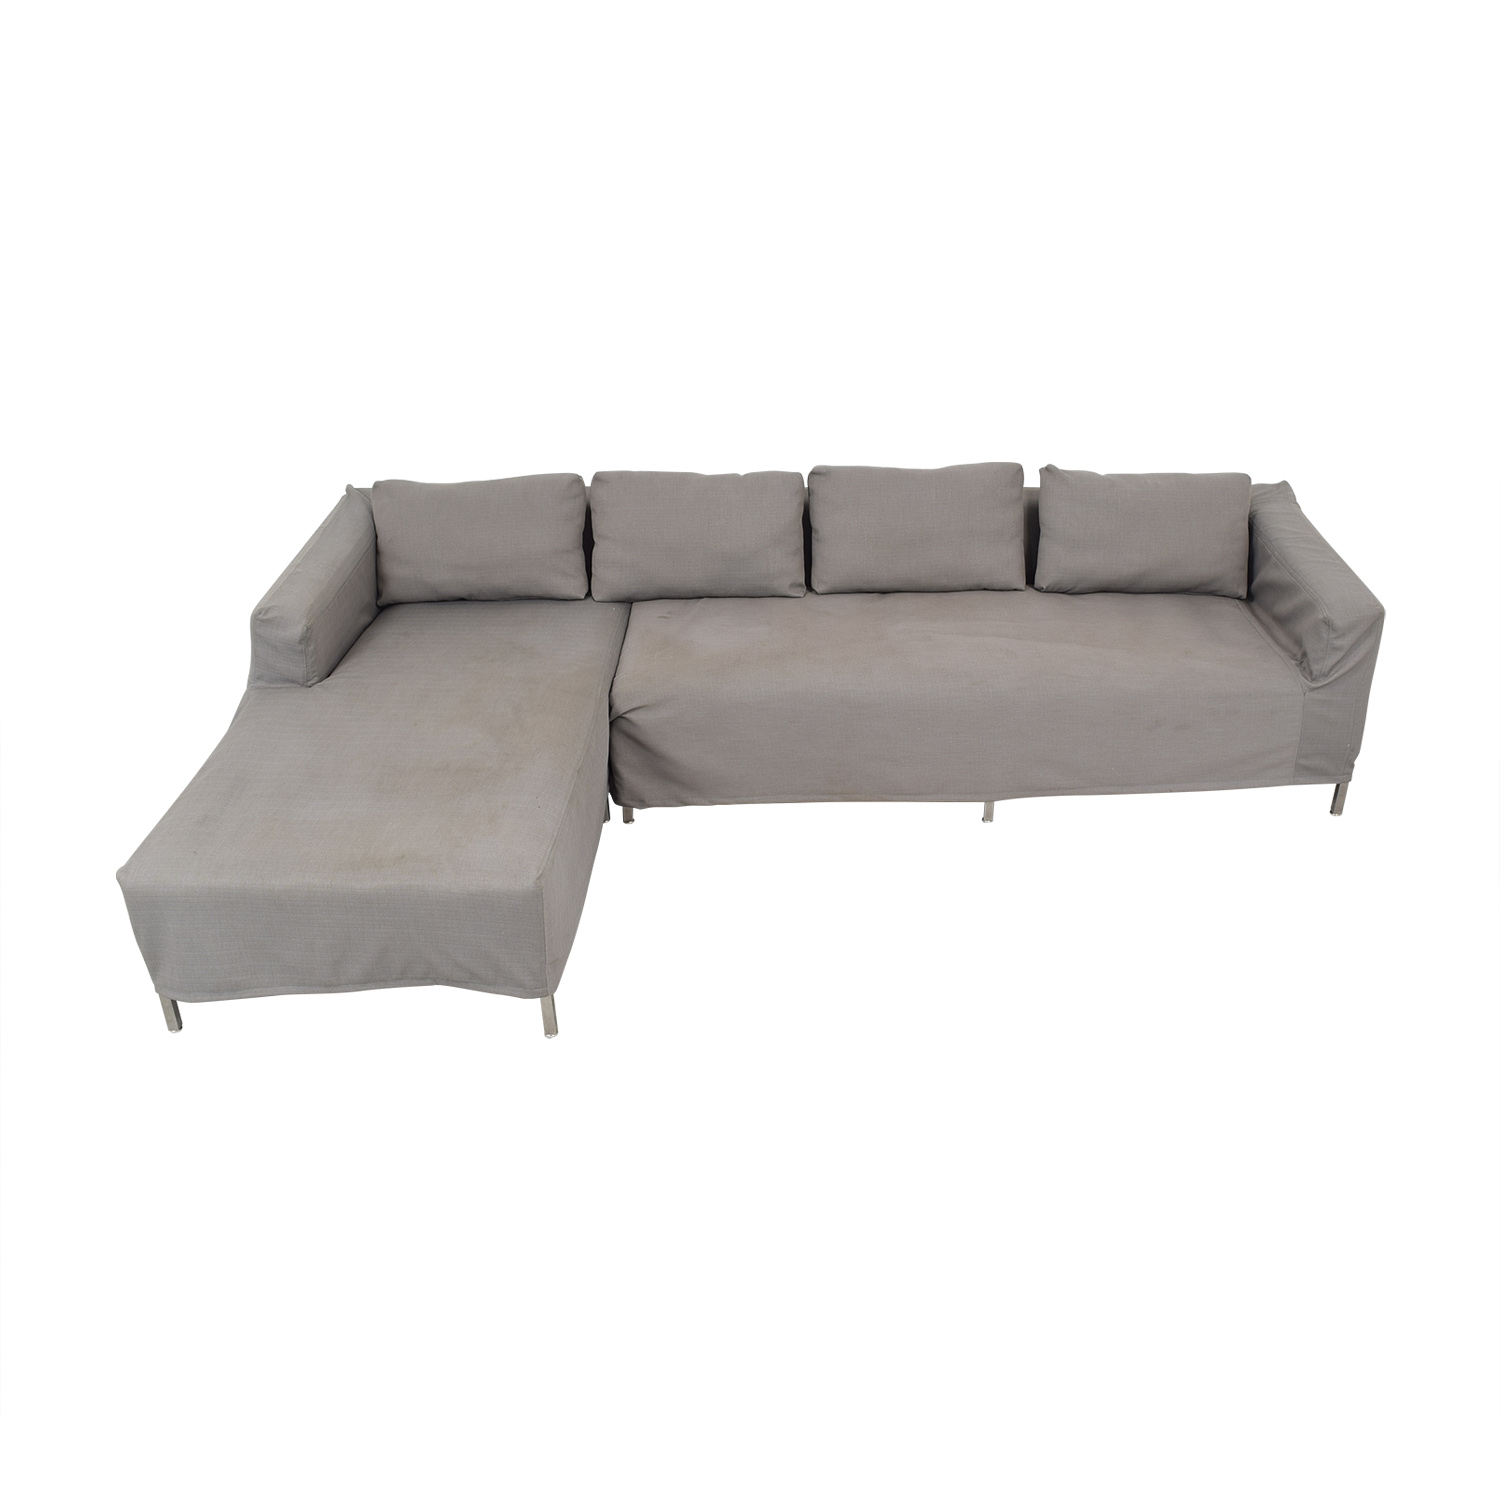 shop Gus Modern Sectional Sofa with Chaise Gus Modern